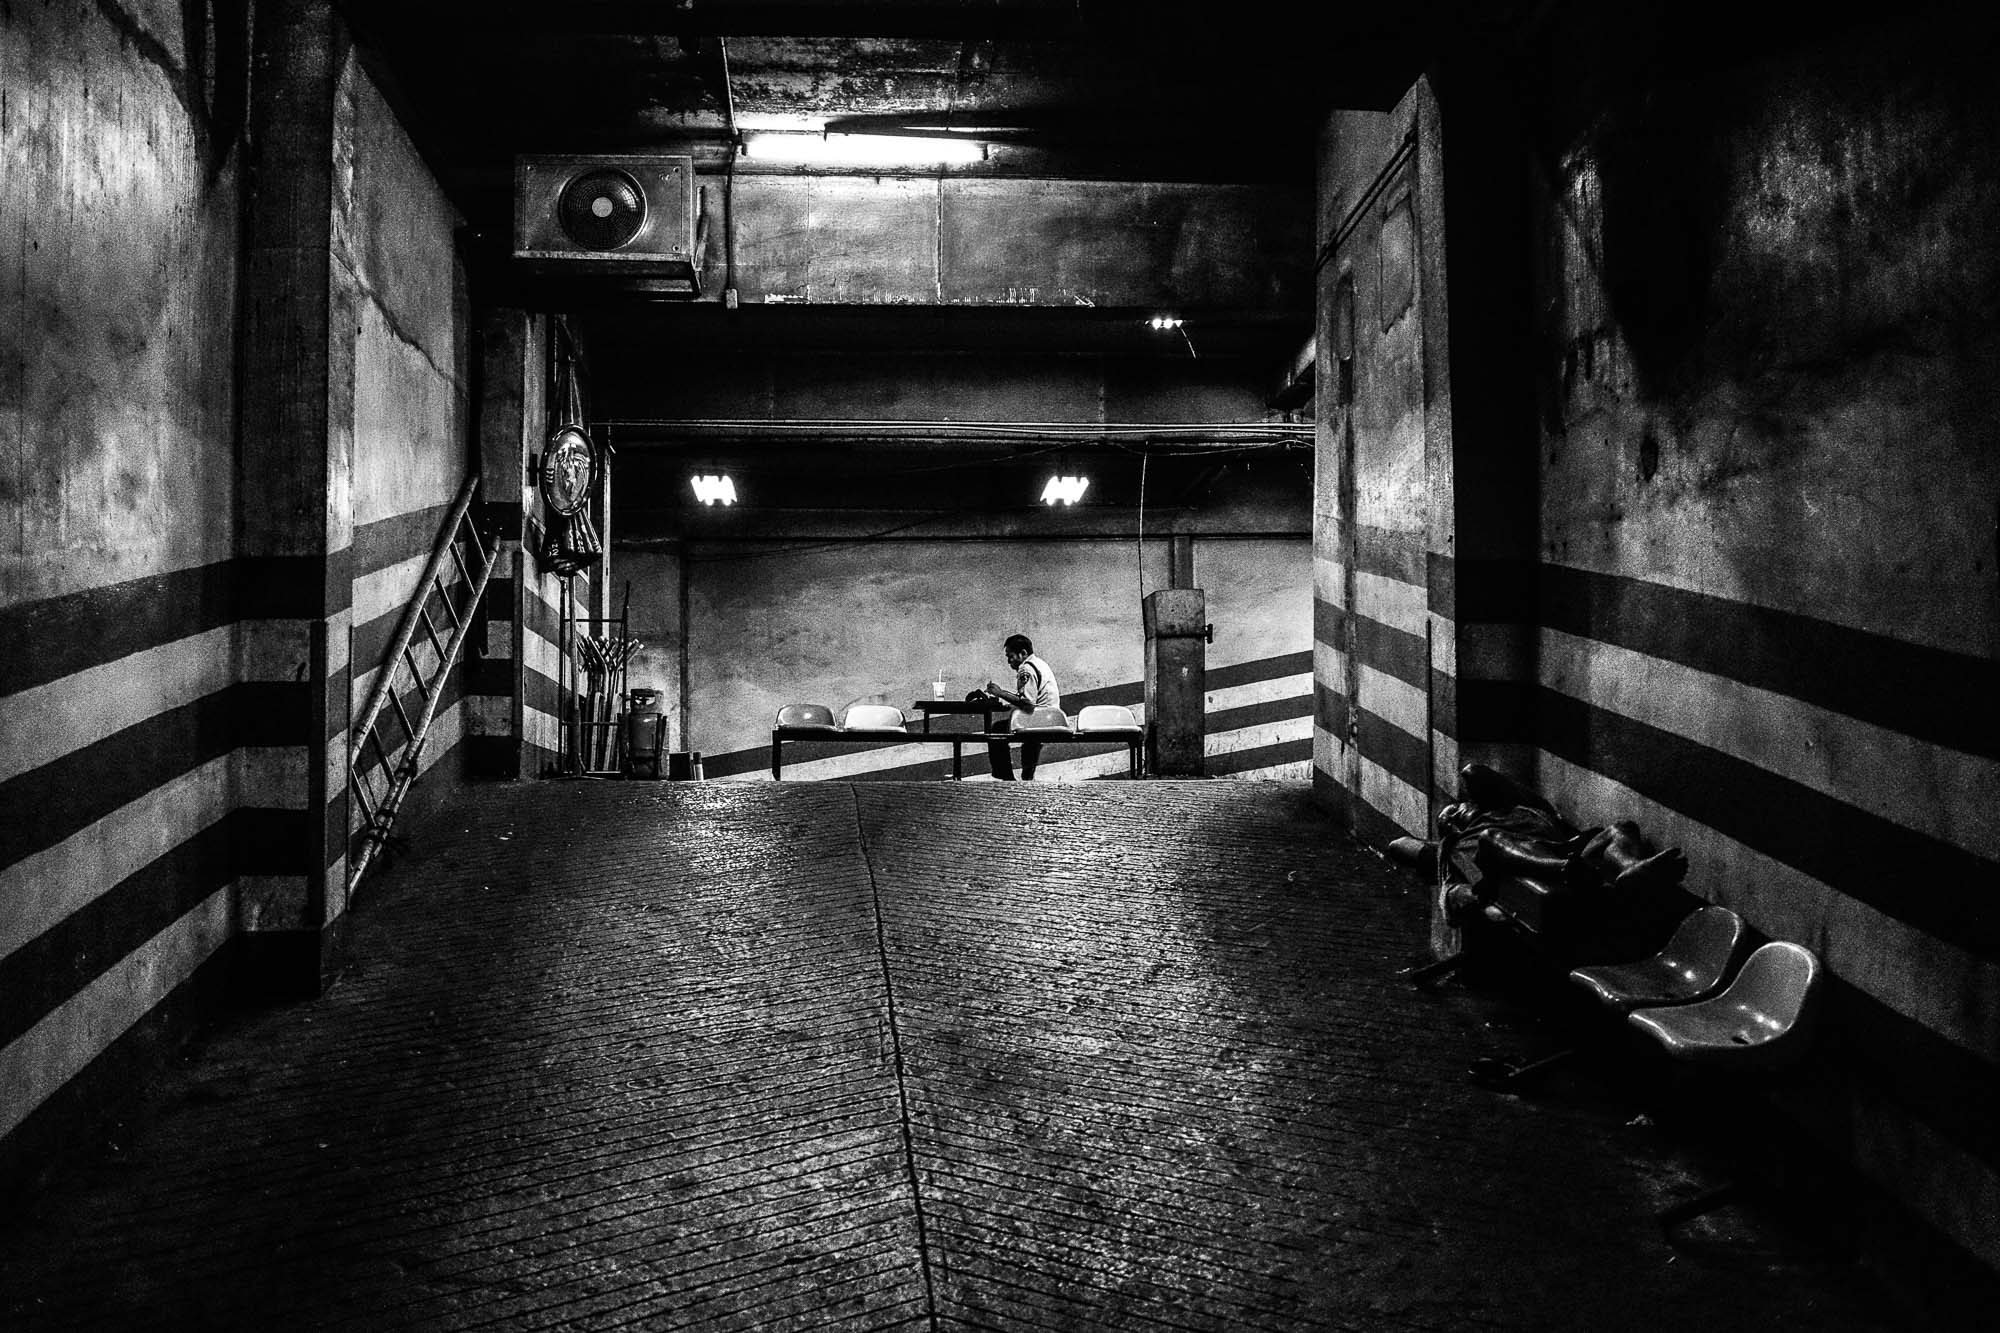 Black and white garage Bangkok Thailand BKK street photography